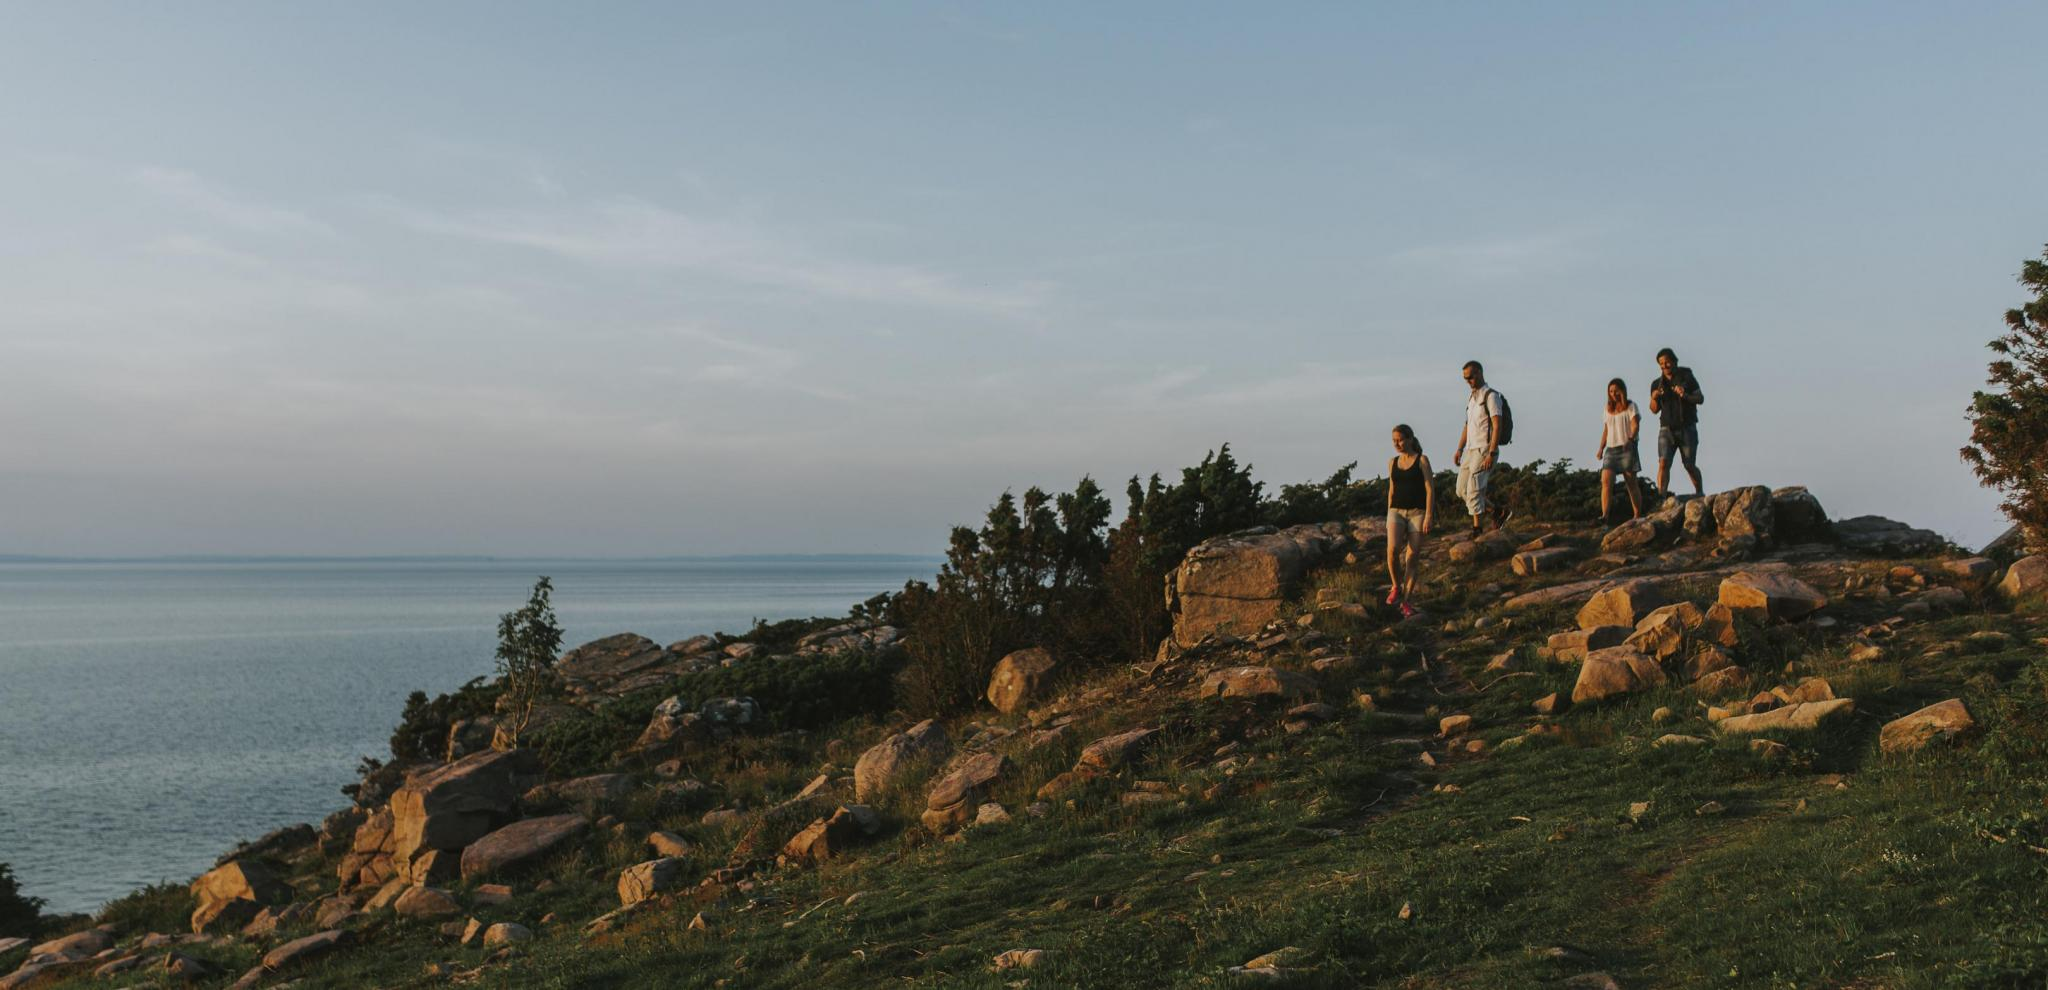 People hiking in sunset over cliffs © Mickael Tannus